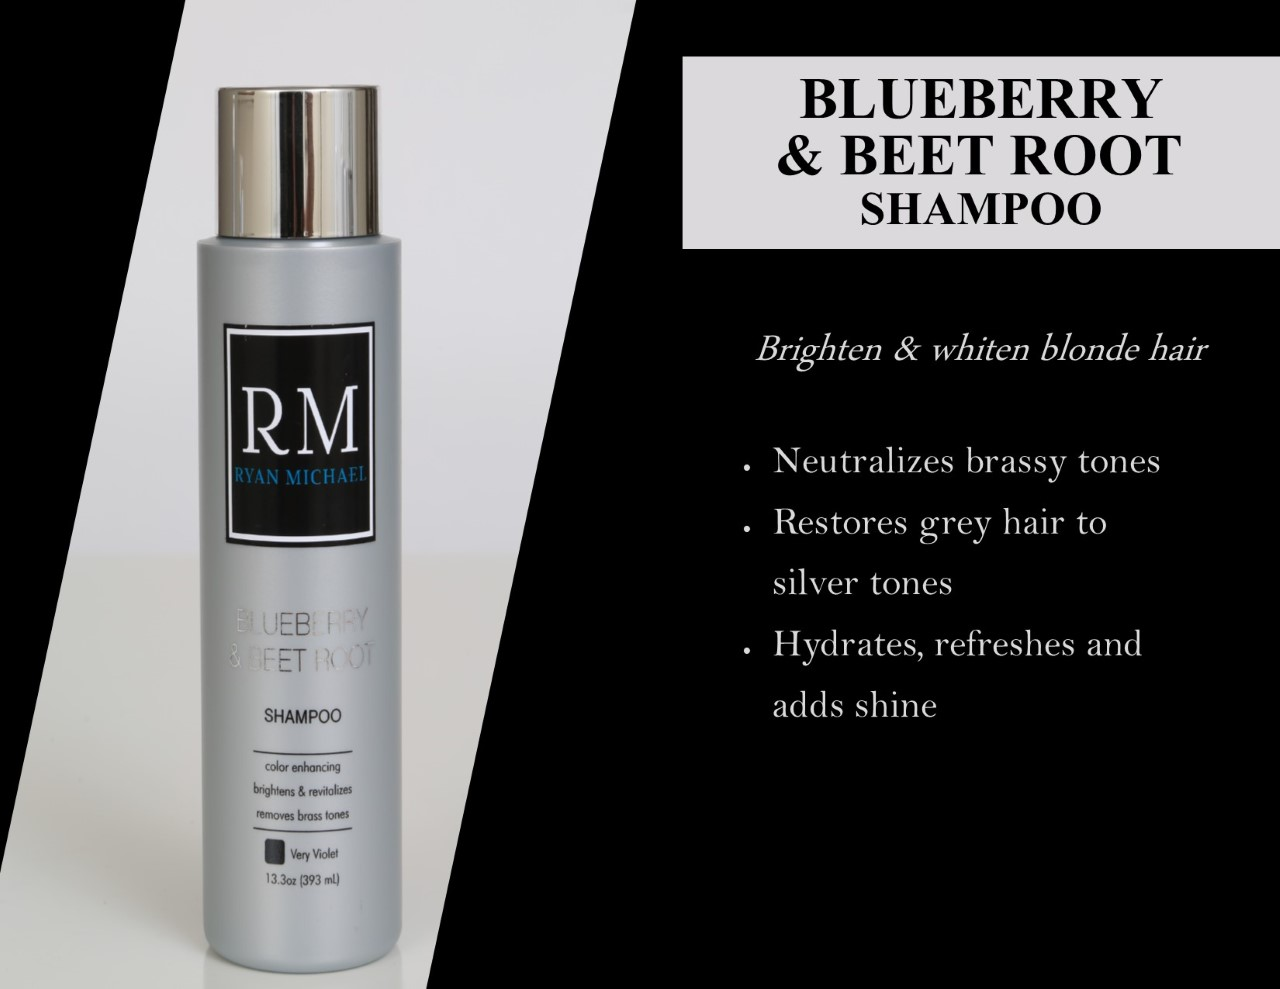 Blueberry & Beet Root Shampoo